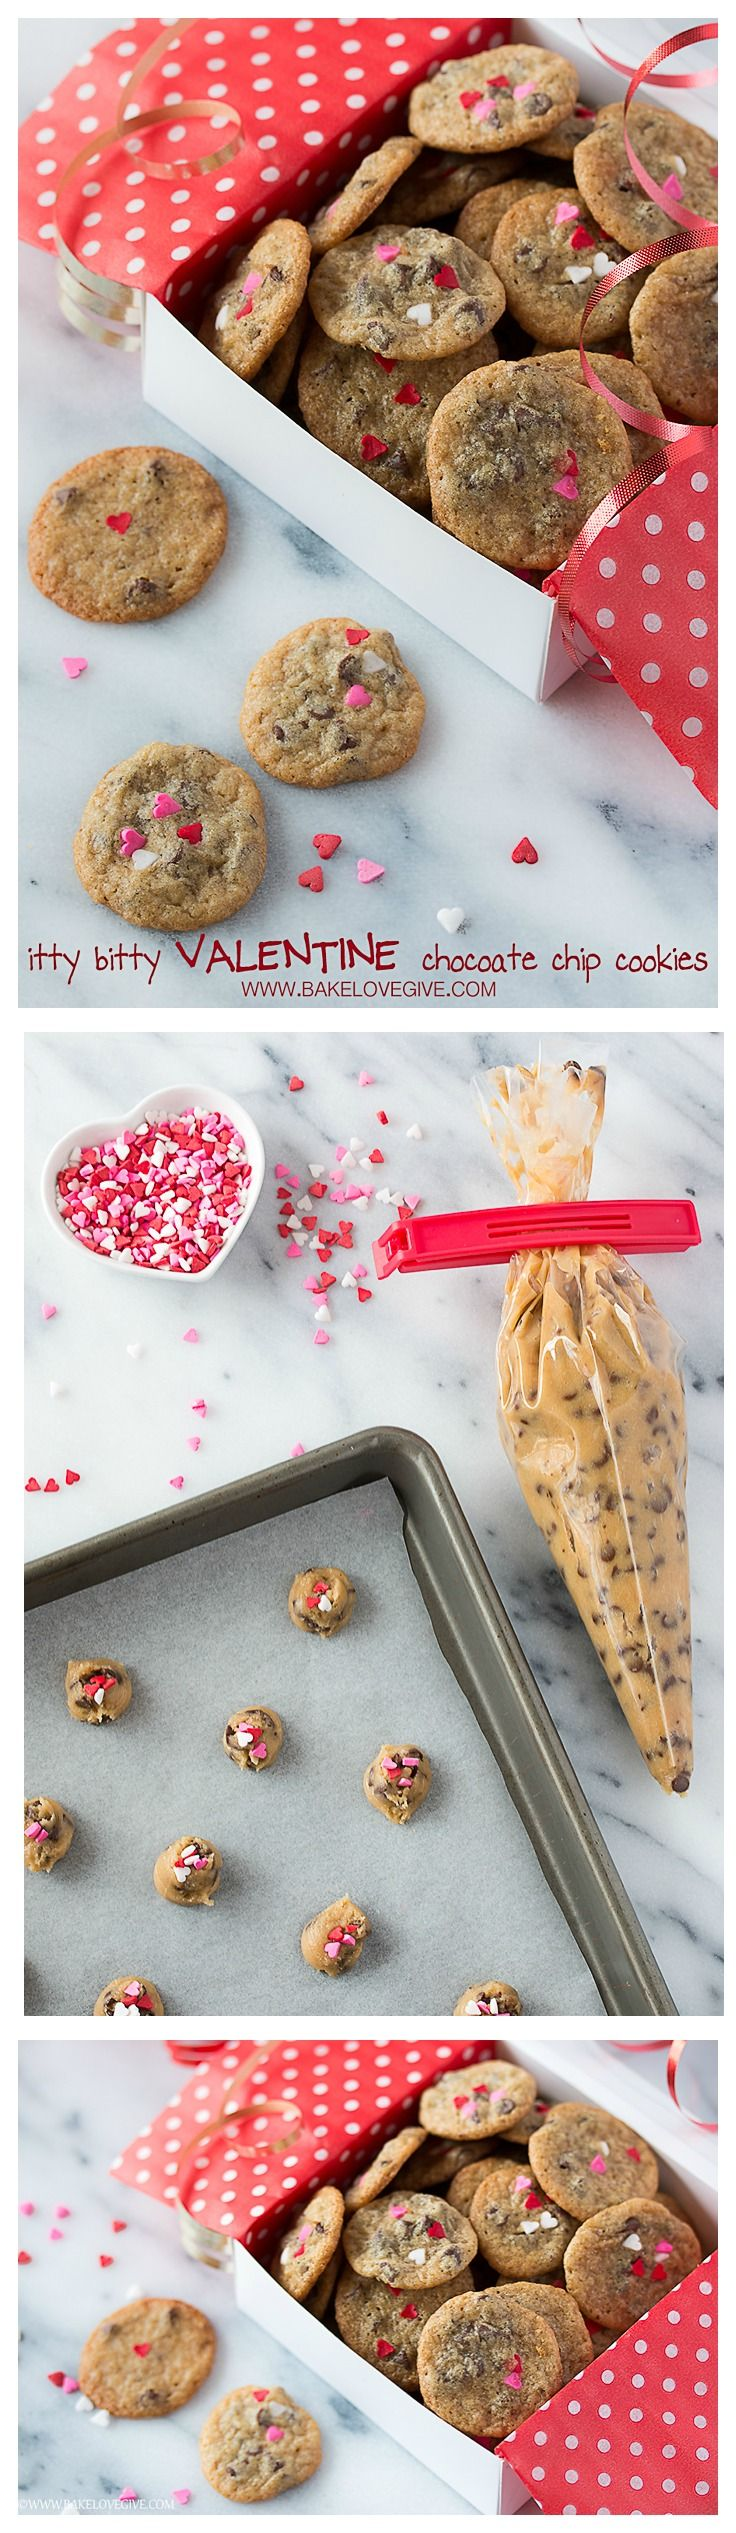 Valentine chocolate, Chocolate chip cookies and Chip cookies on ...